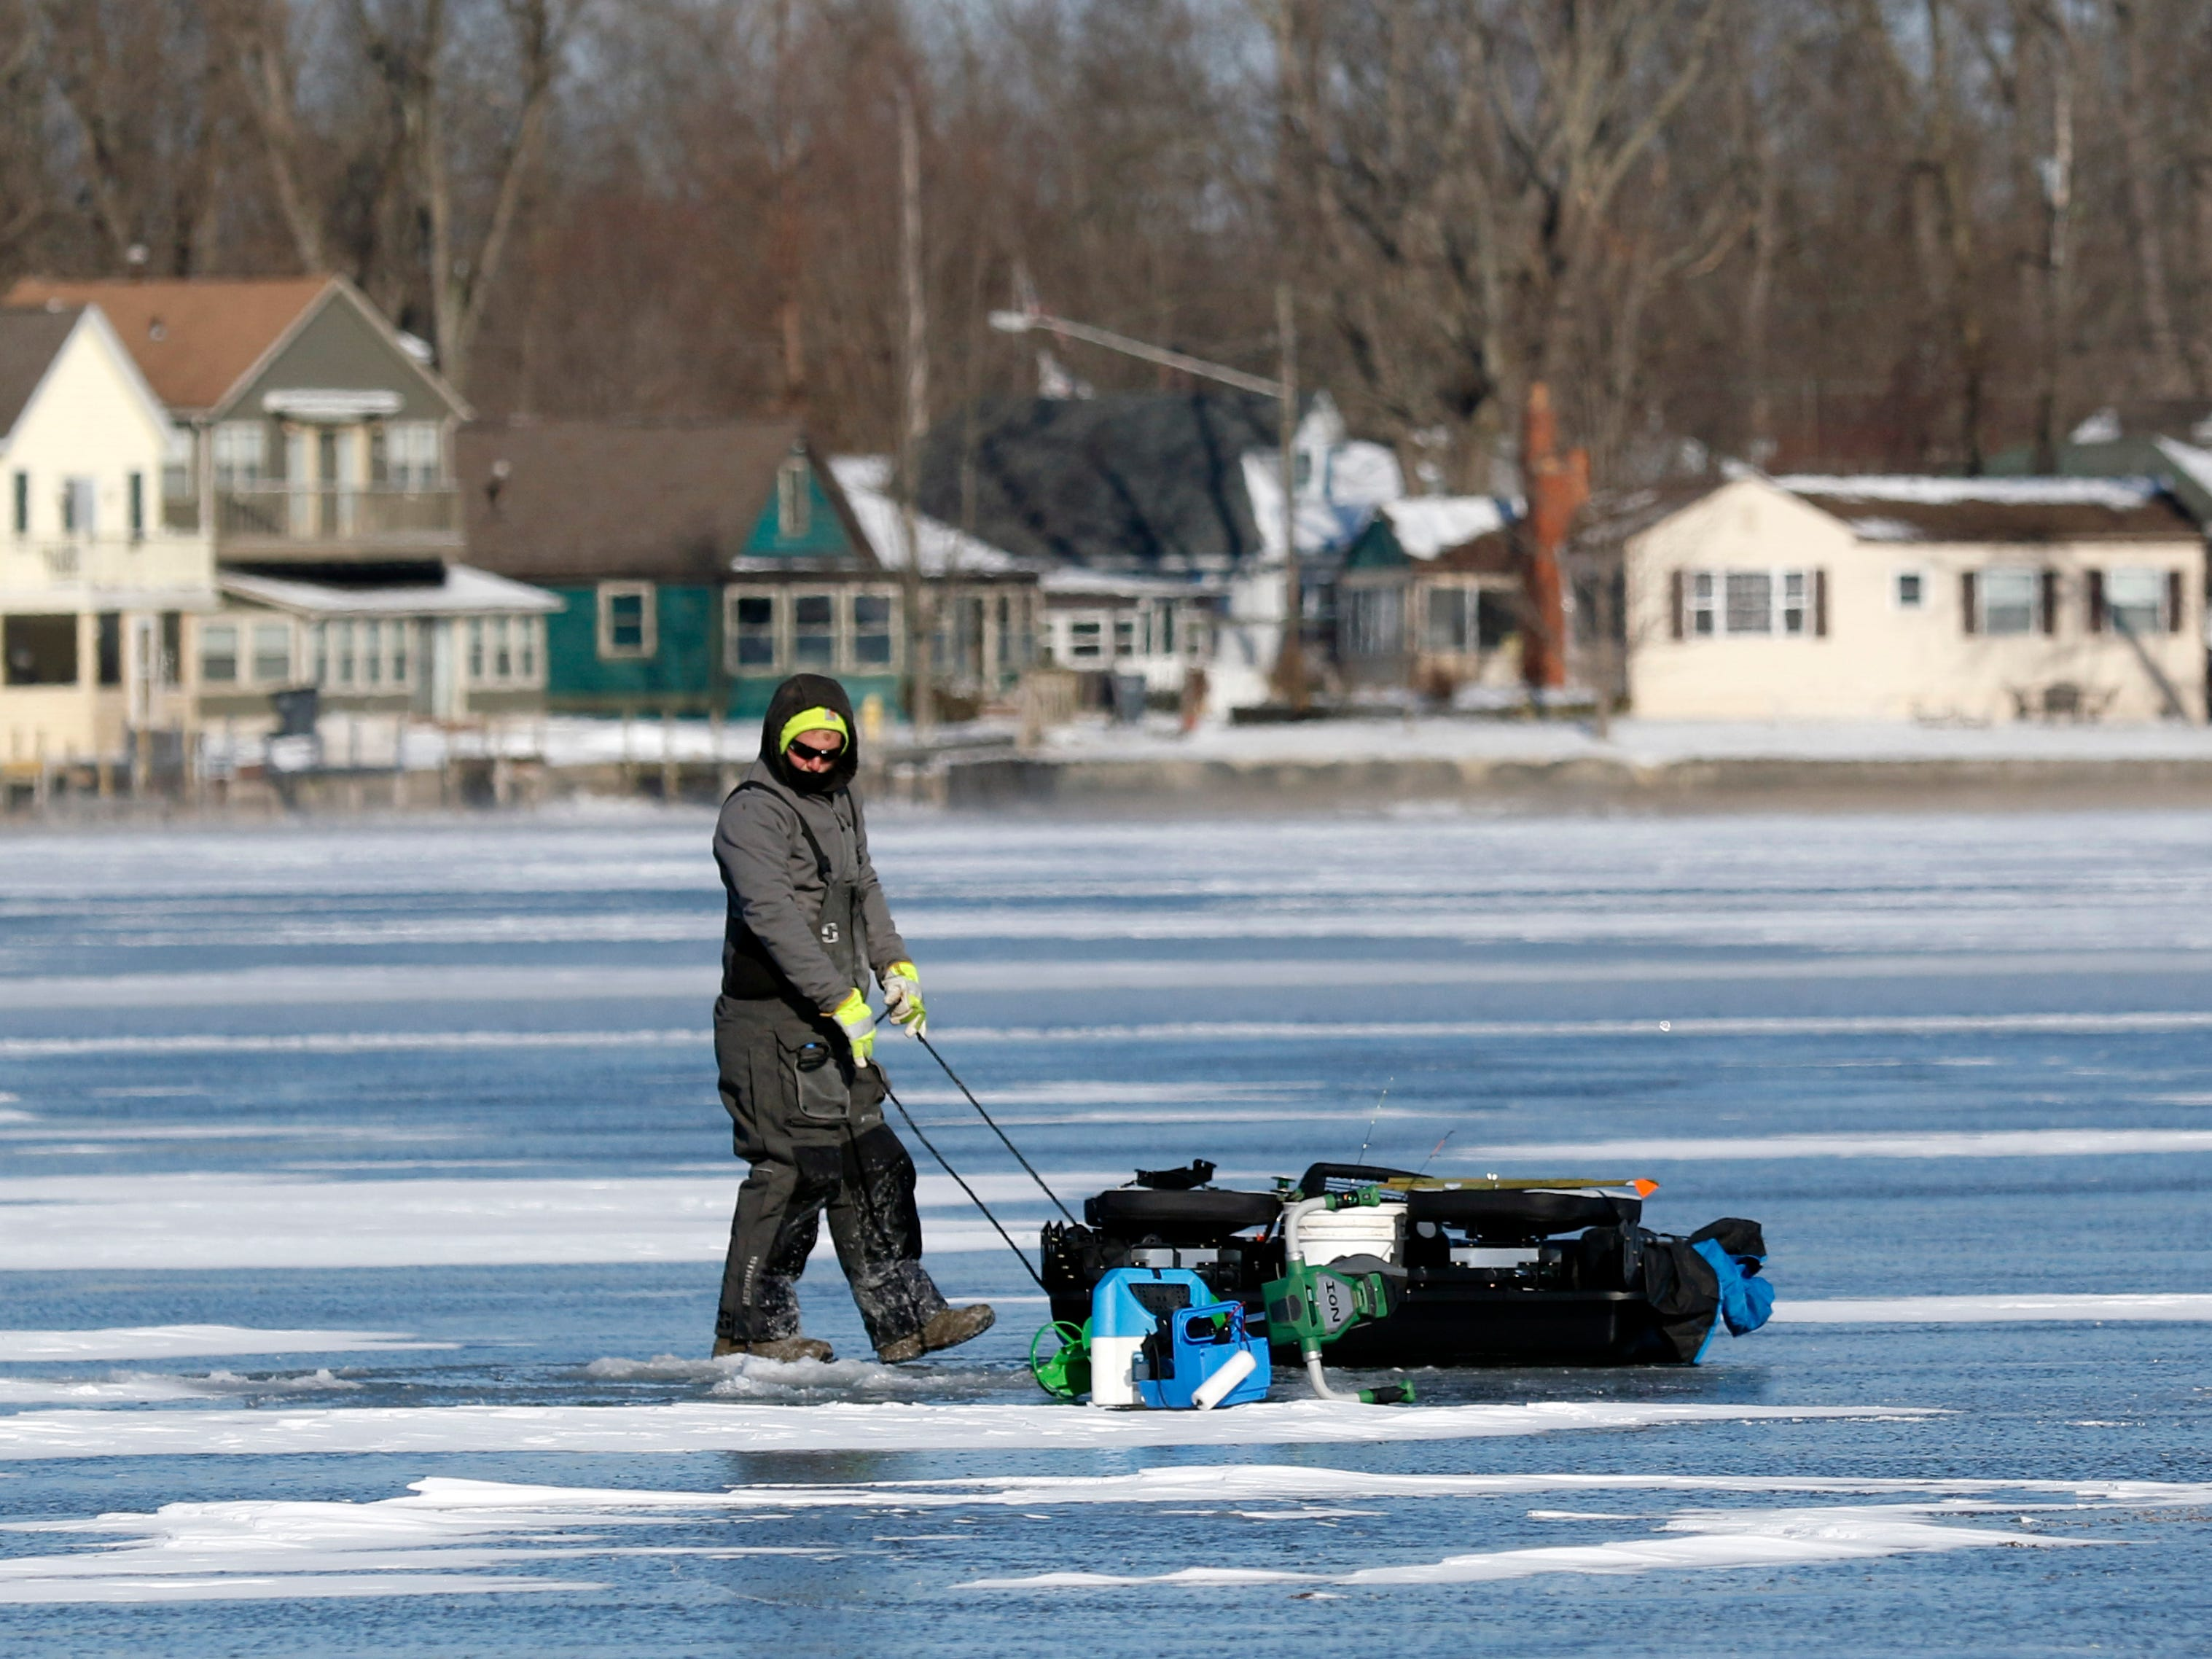 Jake Limings pulls his sled full of gear across the ice and snow covered surface of Buckeye Lake Thursday morning, Jan. 31, 2019. Freezing temperatures this week have formed more than five inches of ice on the lake's surface, and despite single digit temperatures and a wind chill advisory several people took the opportunity to ice fish.